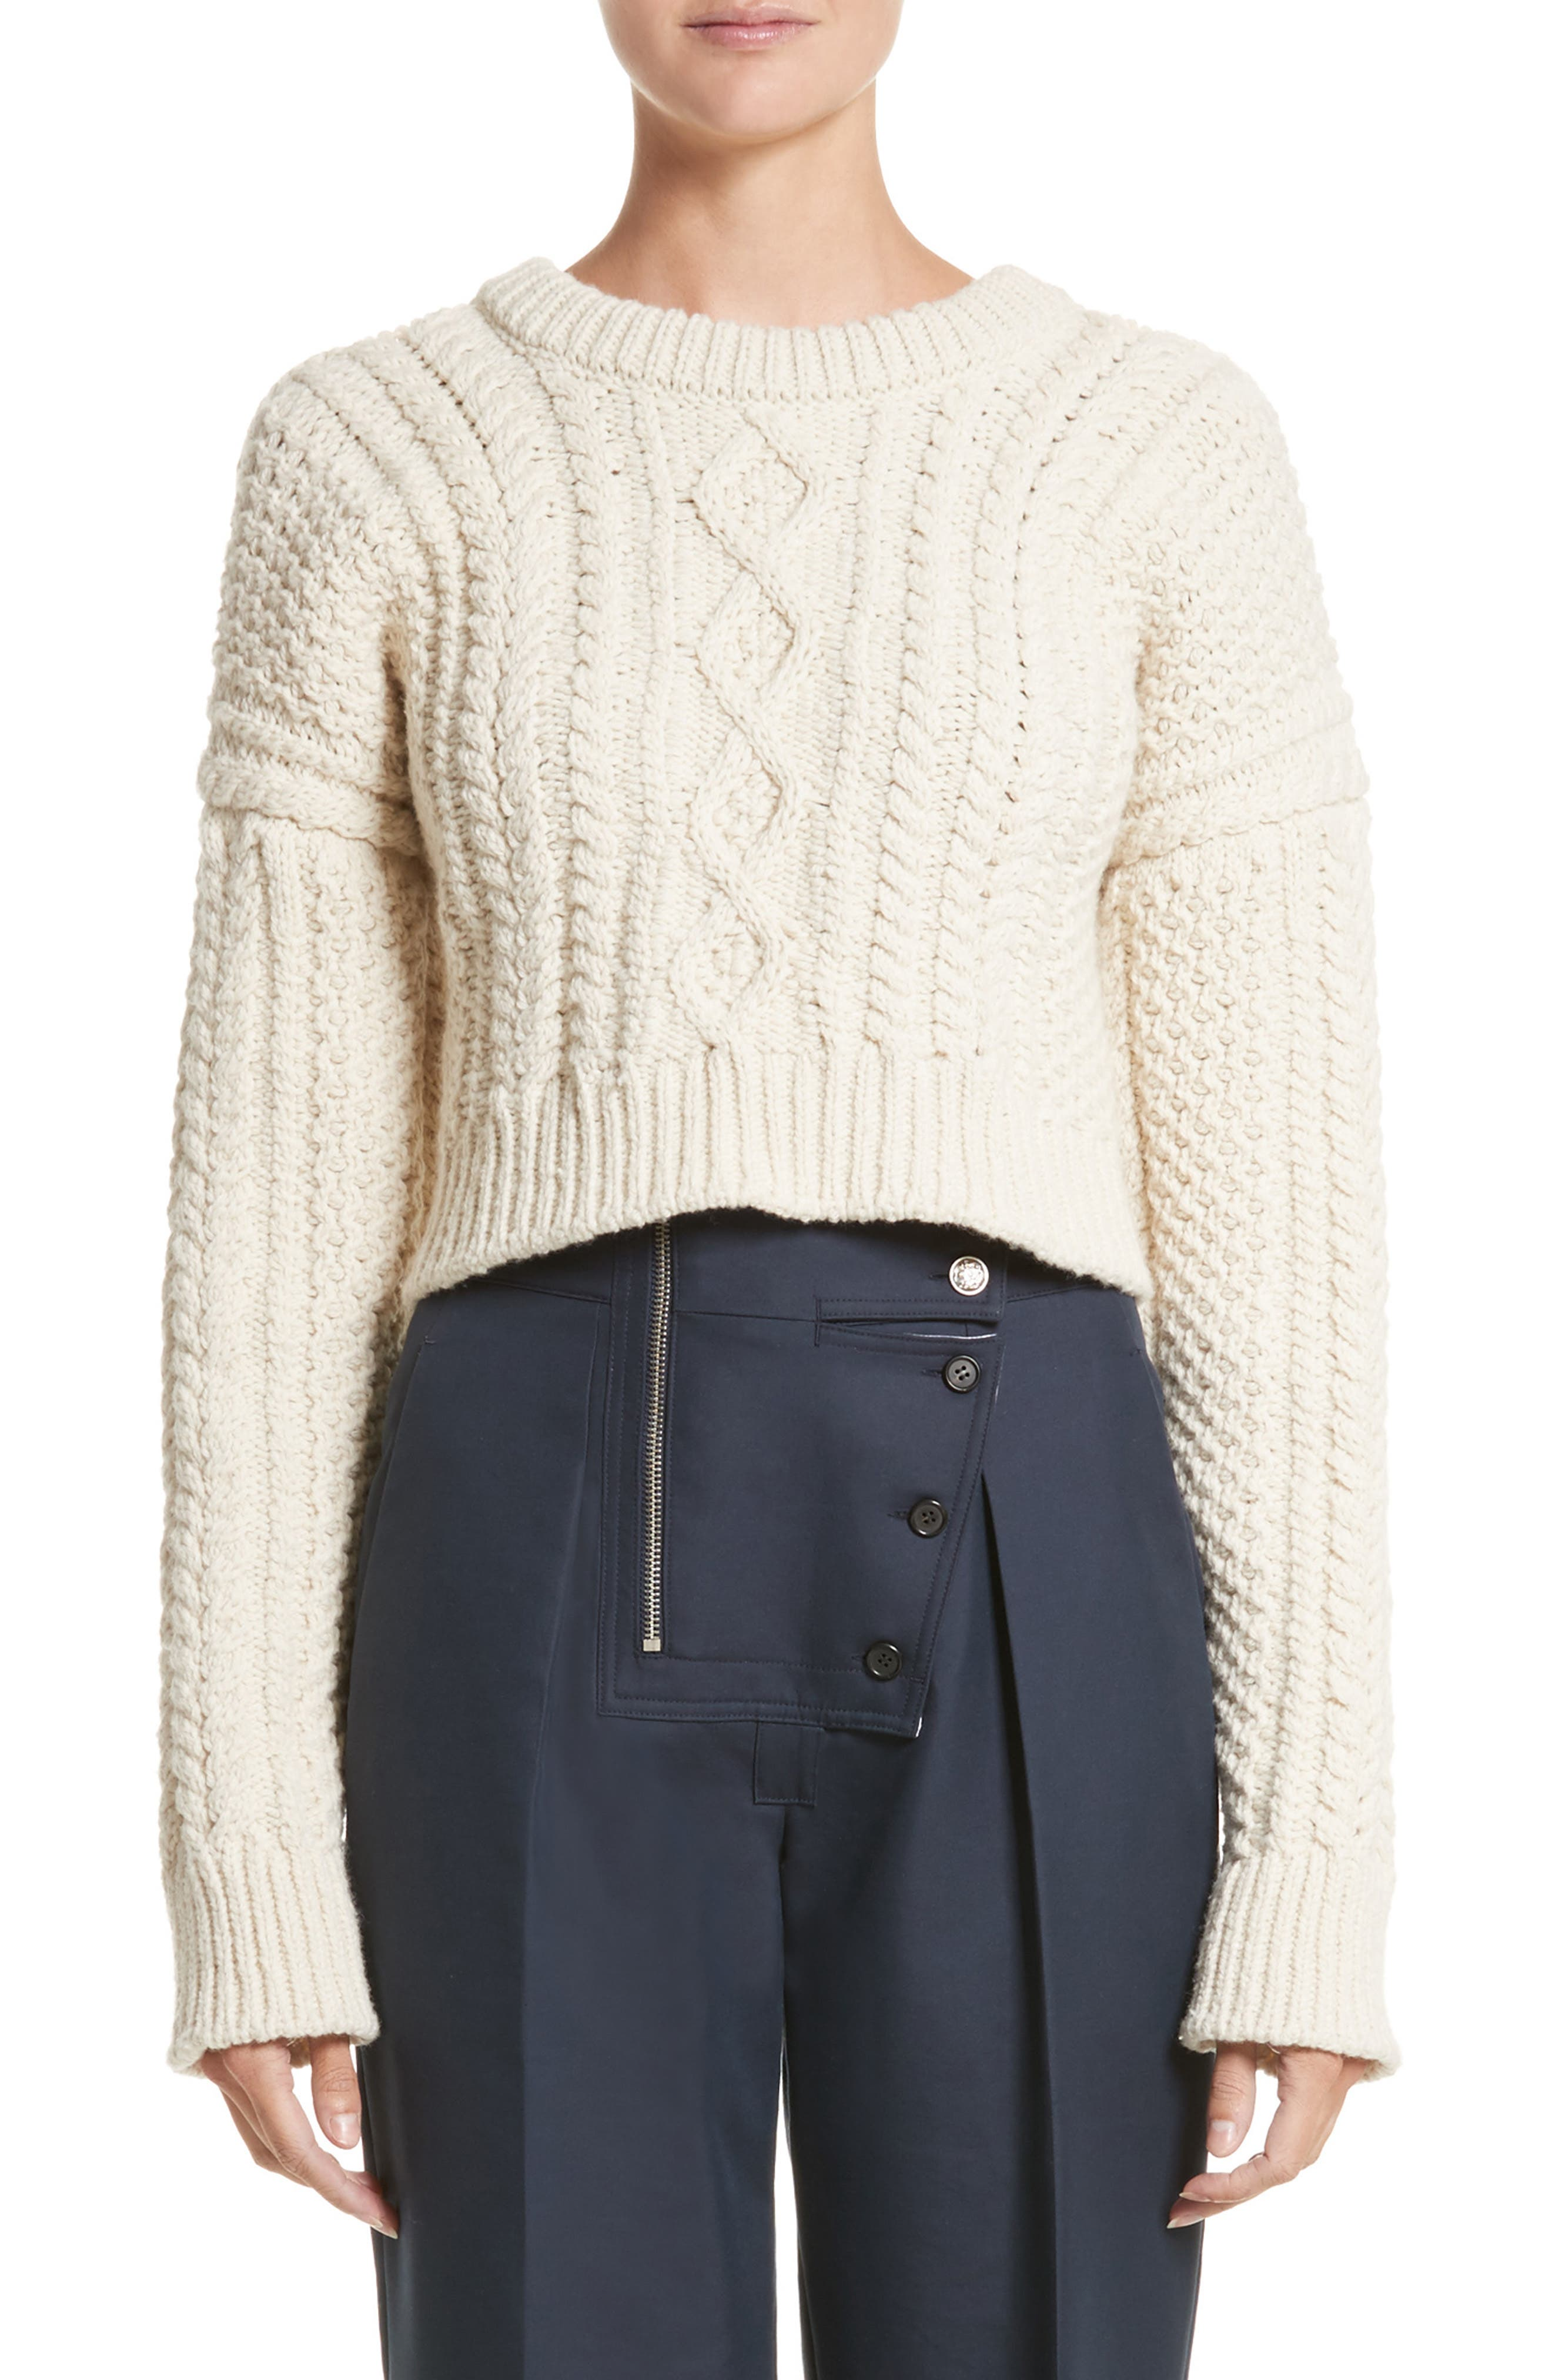 Alternate Image 1 Selected - Calvin Klein 205W39NYC Back Strap Cable Knit Crop Sweater